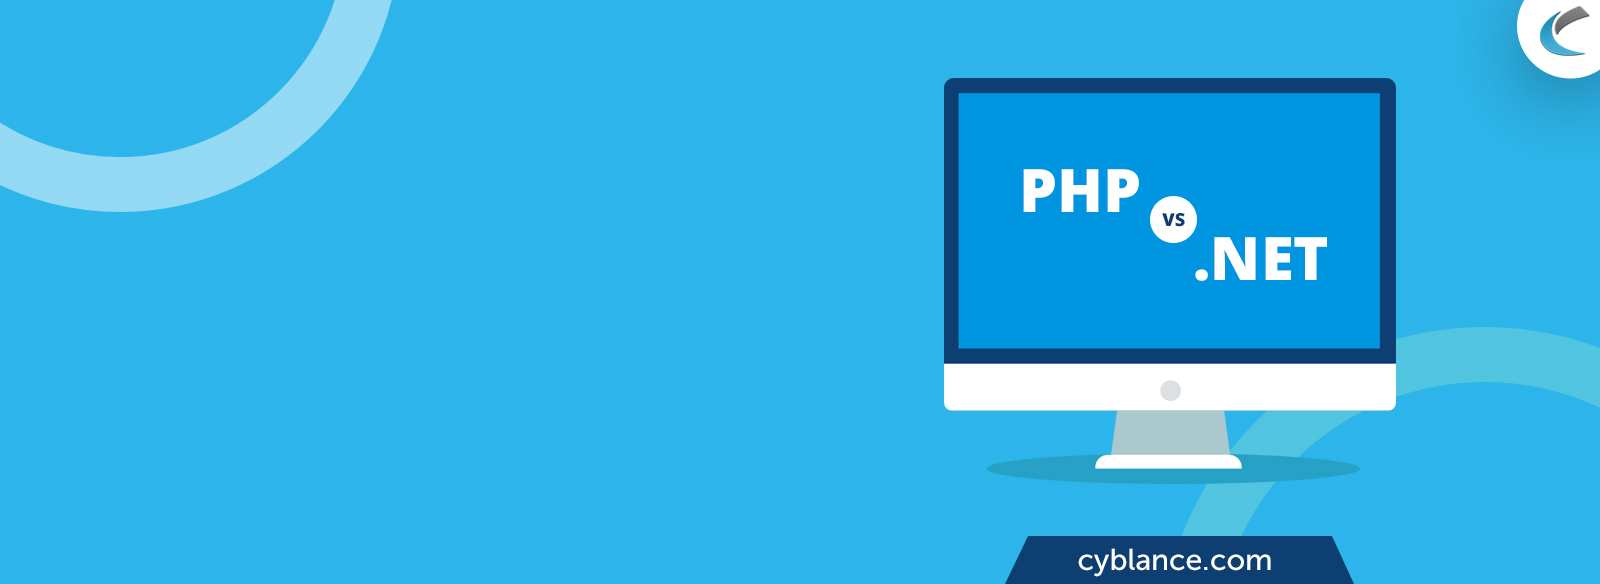 Why PHP is a better development platform than ASP.NET?